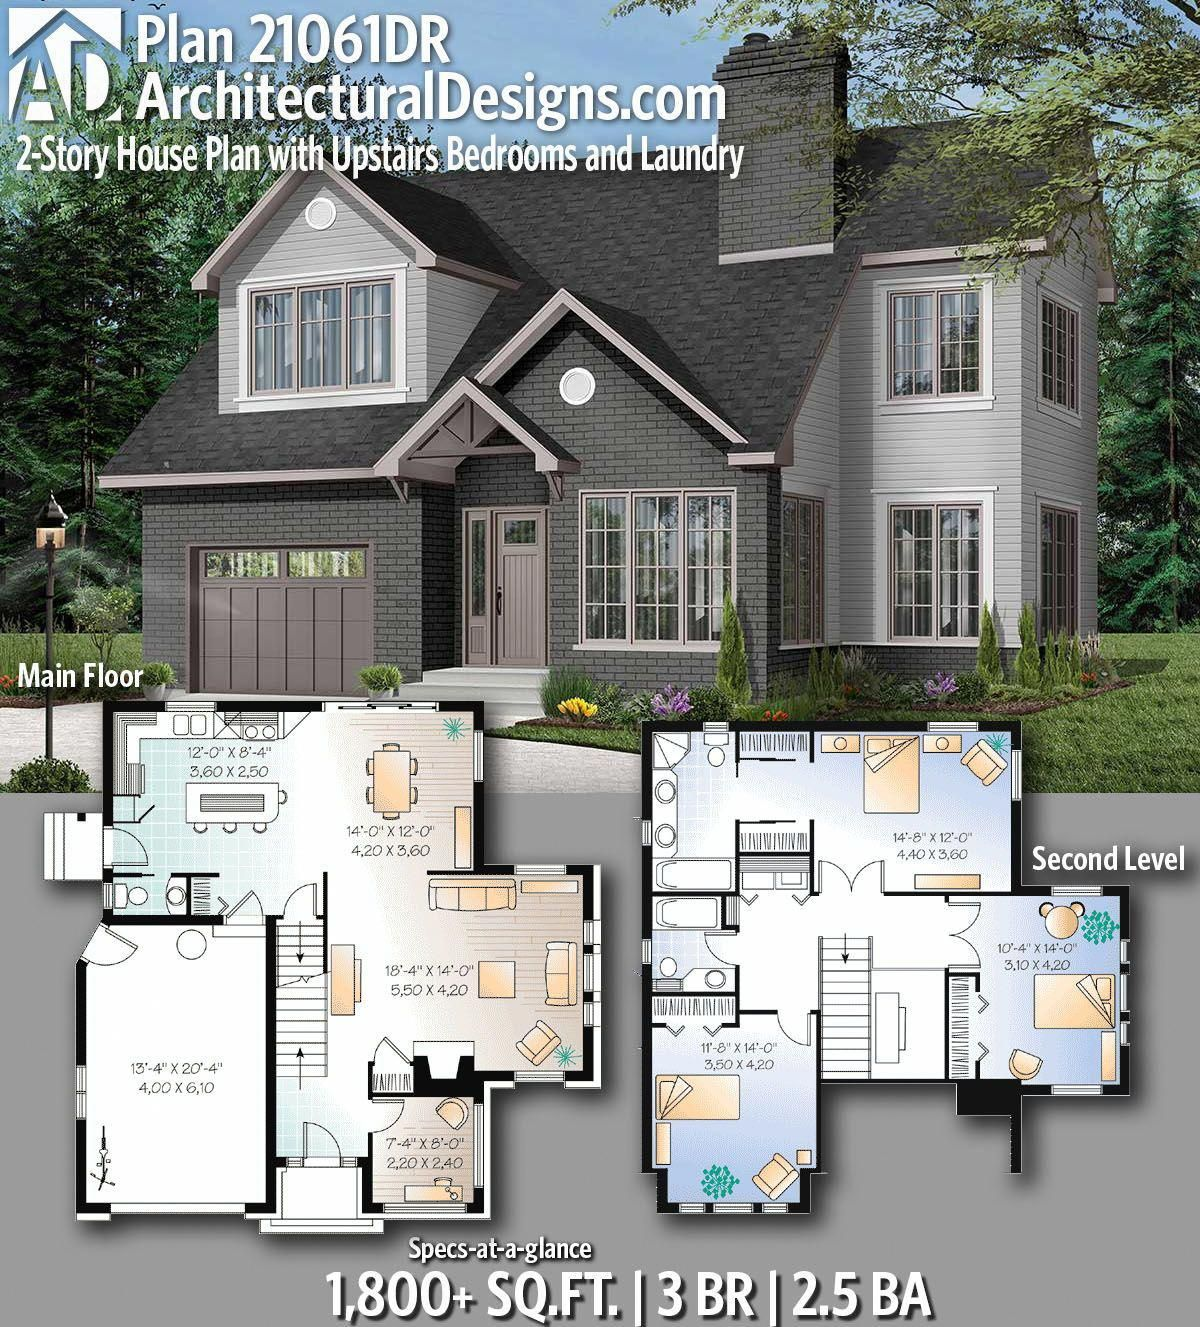 Go Look At Our Blog For Lots More Information On This Spectacular Photo Floodpreparedness Sims House Plans House Plans House Blueprints